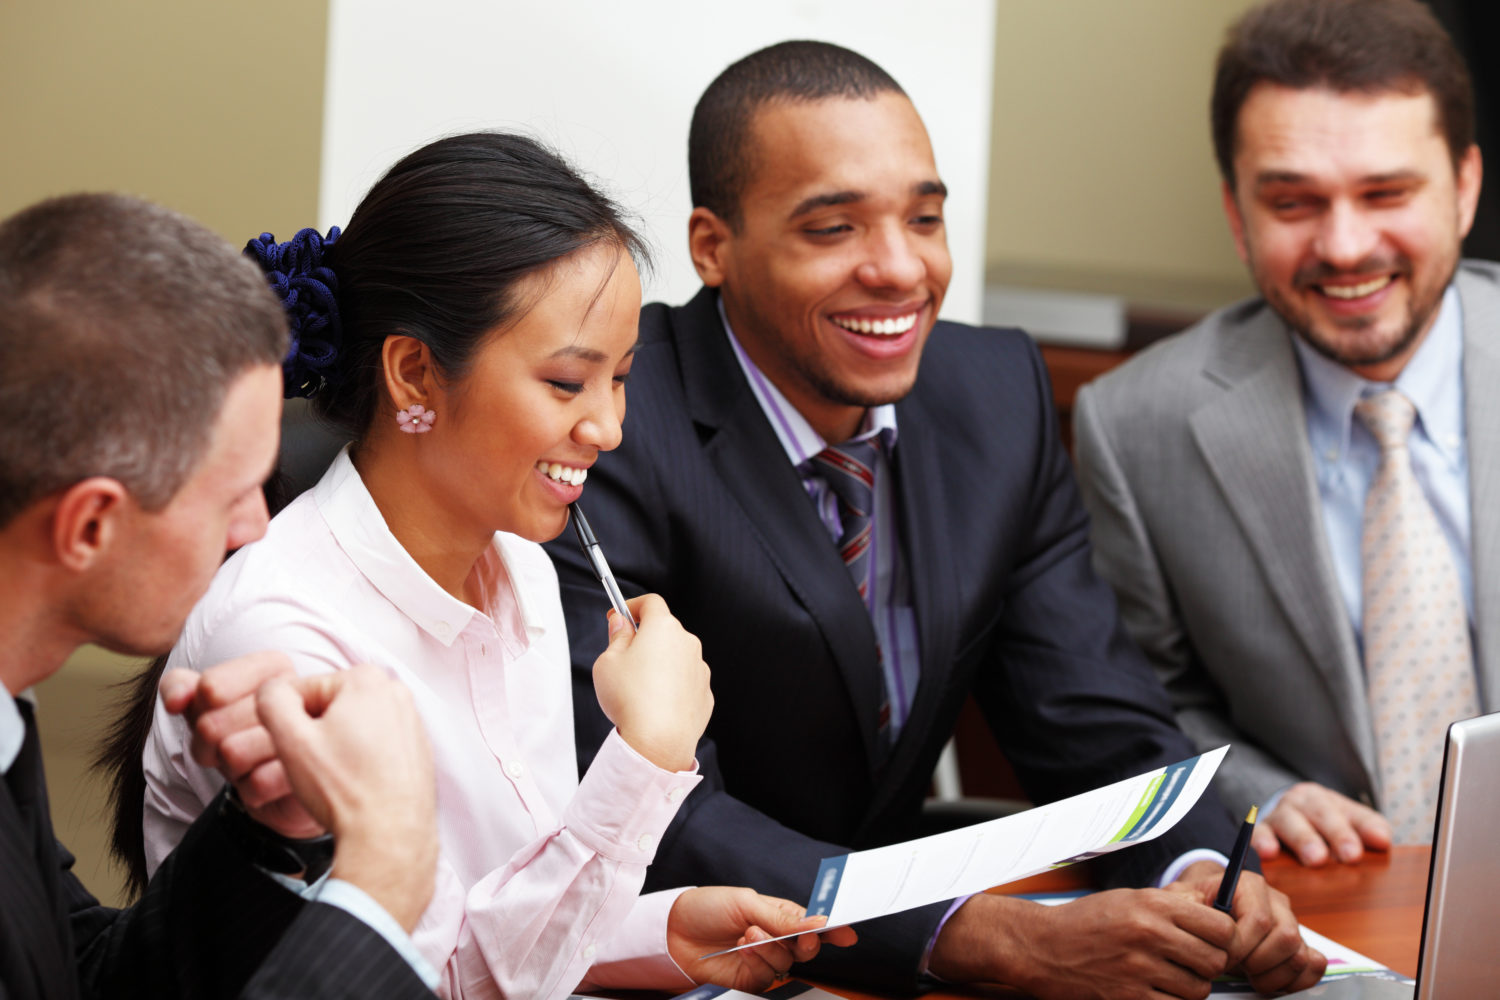 Diverse group of employees mid-discussion